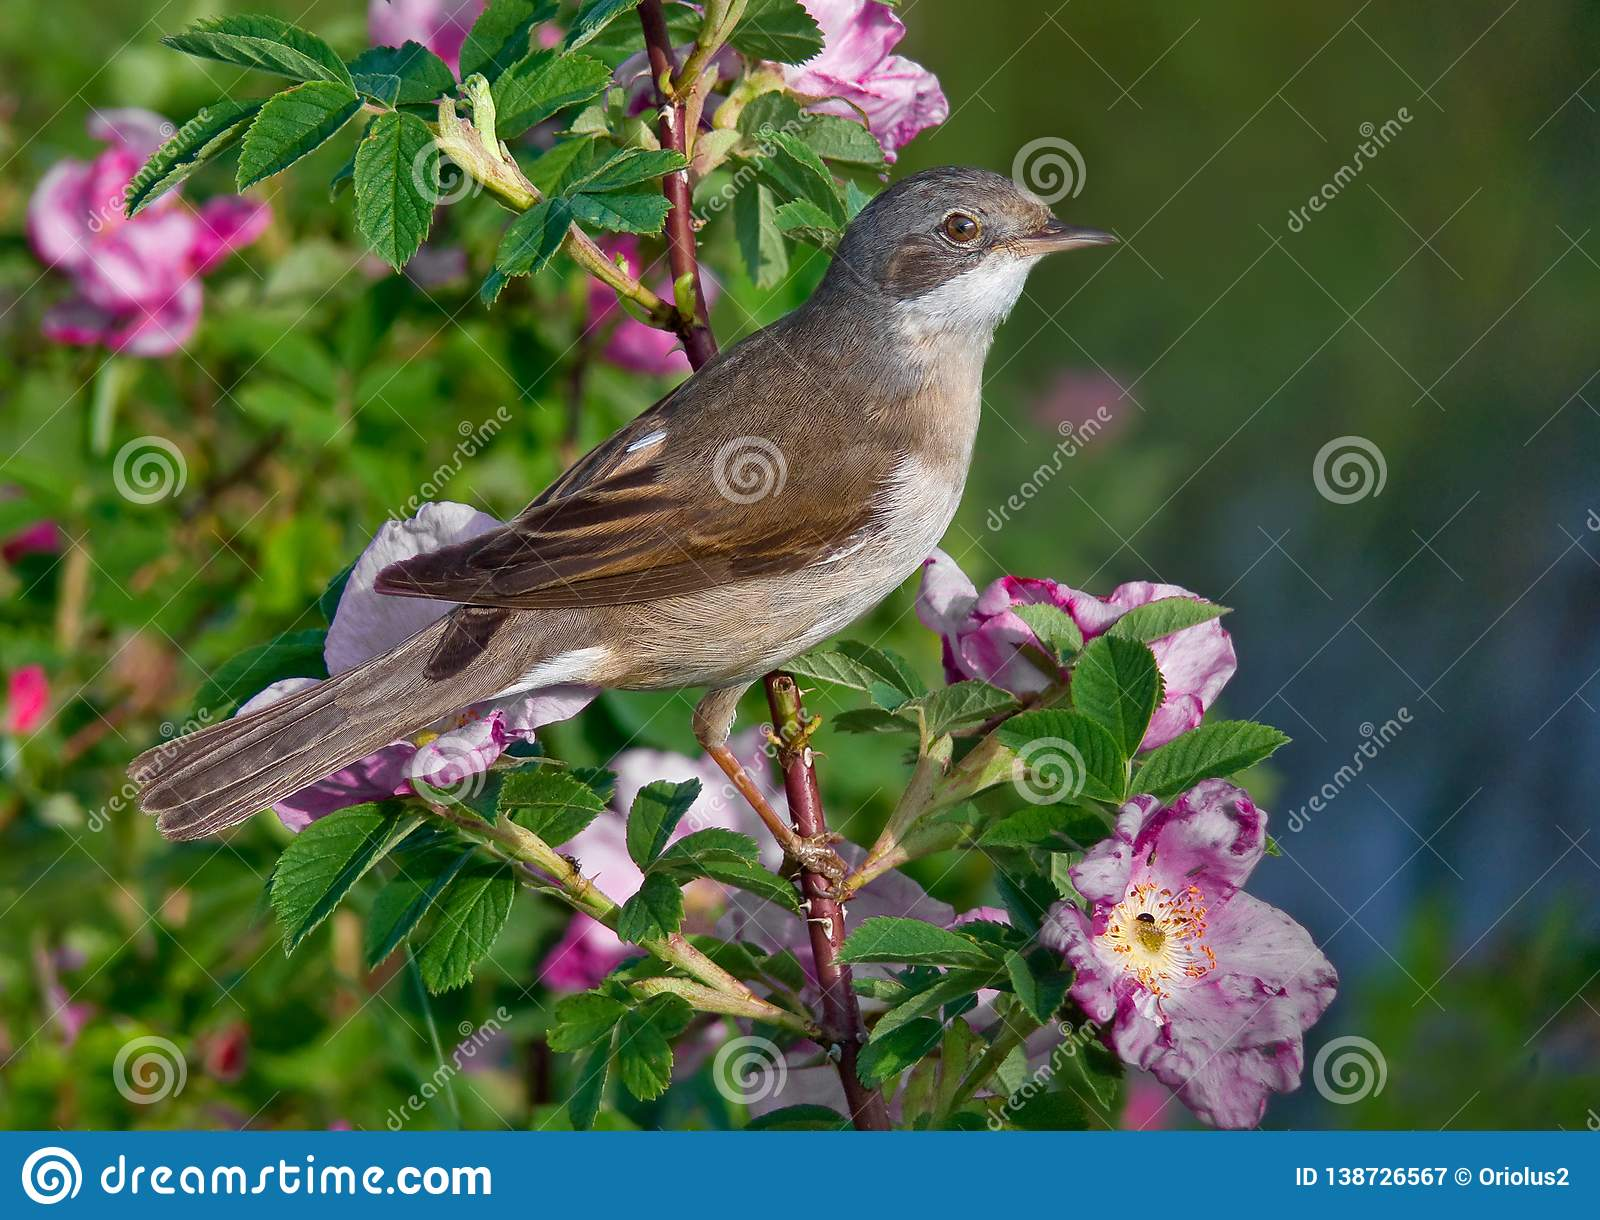 Common whitethroat male perched on a blossoming bush with a lot of flowers